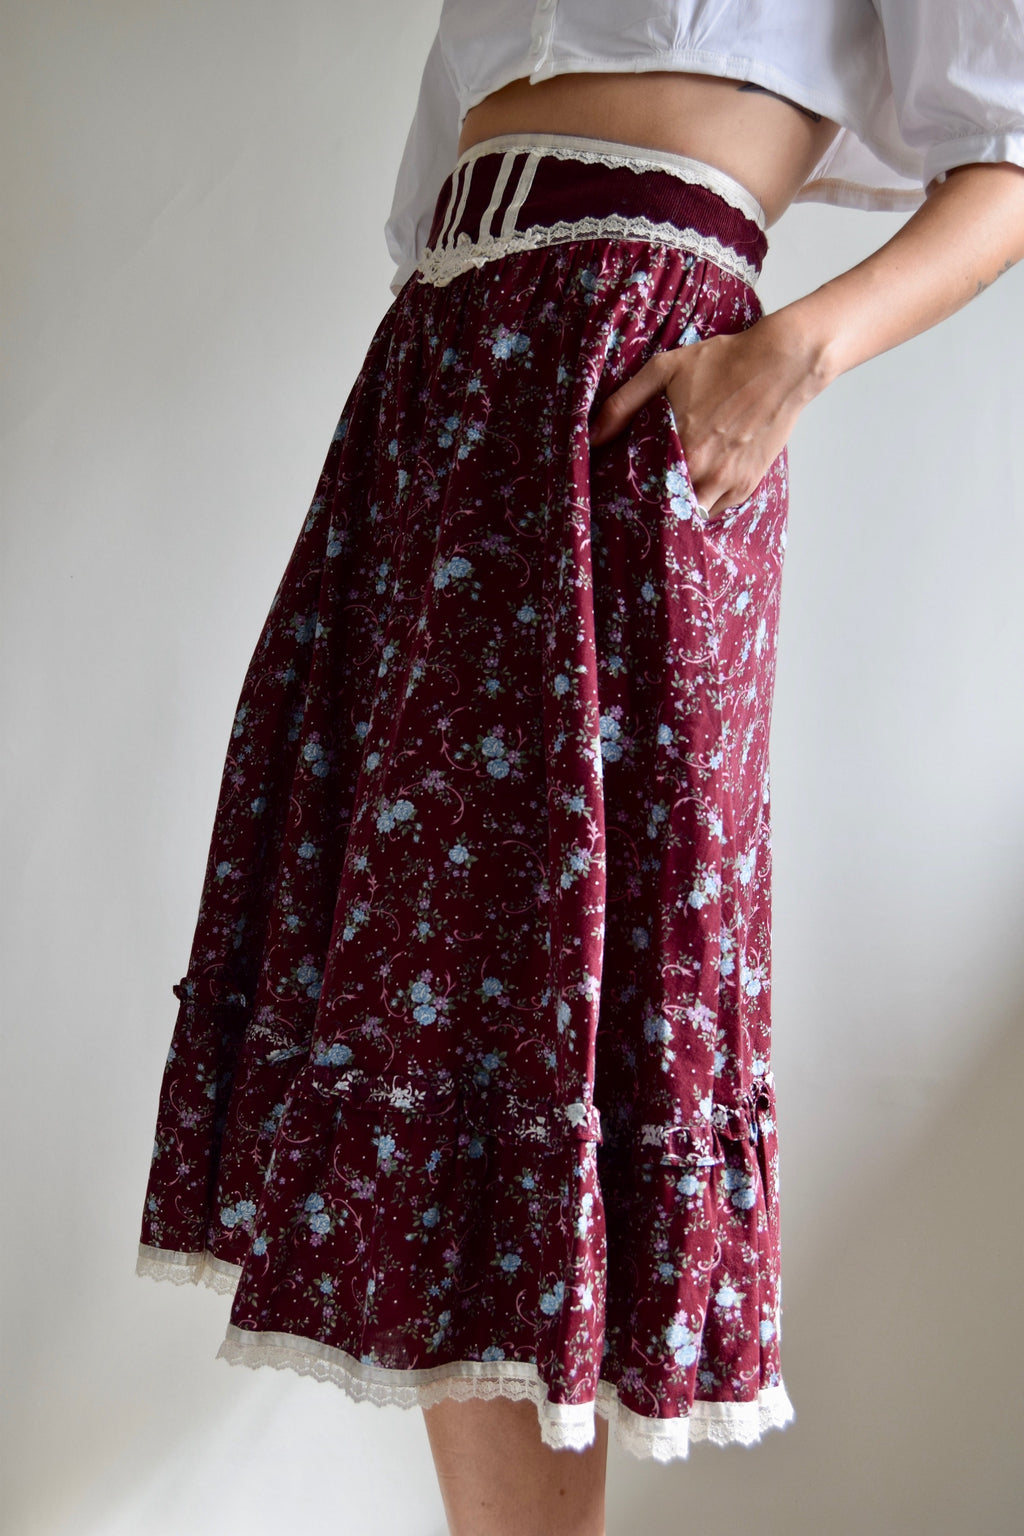 Vintage 1970's Ruffled Gunne Sax Floral Wine Skirt FREE SHIPPING TO THE U.S.